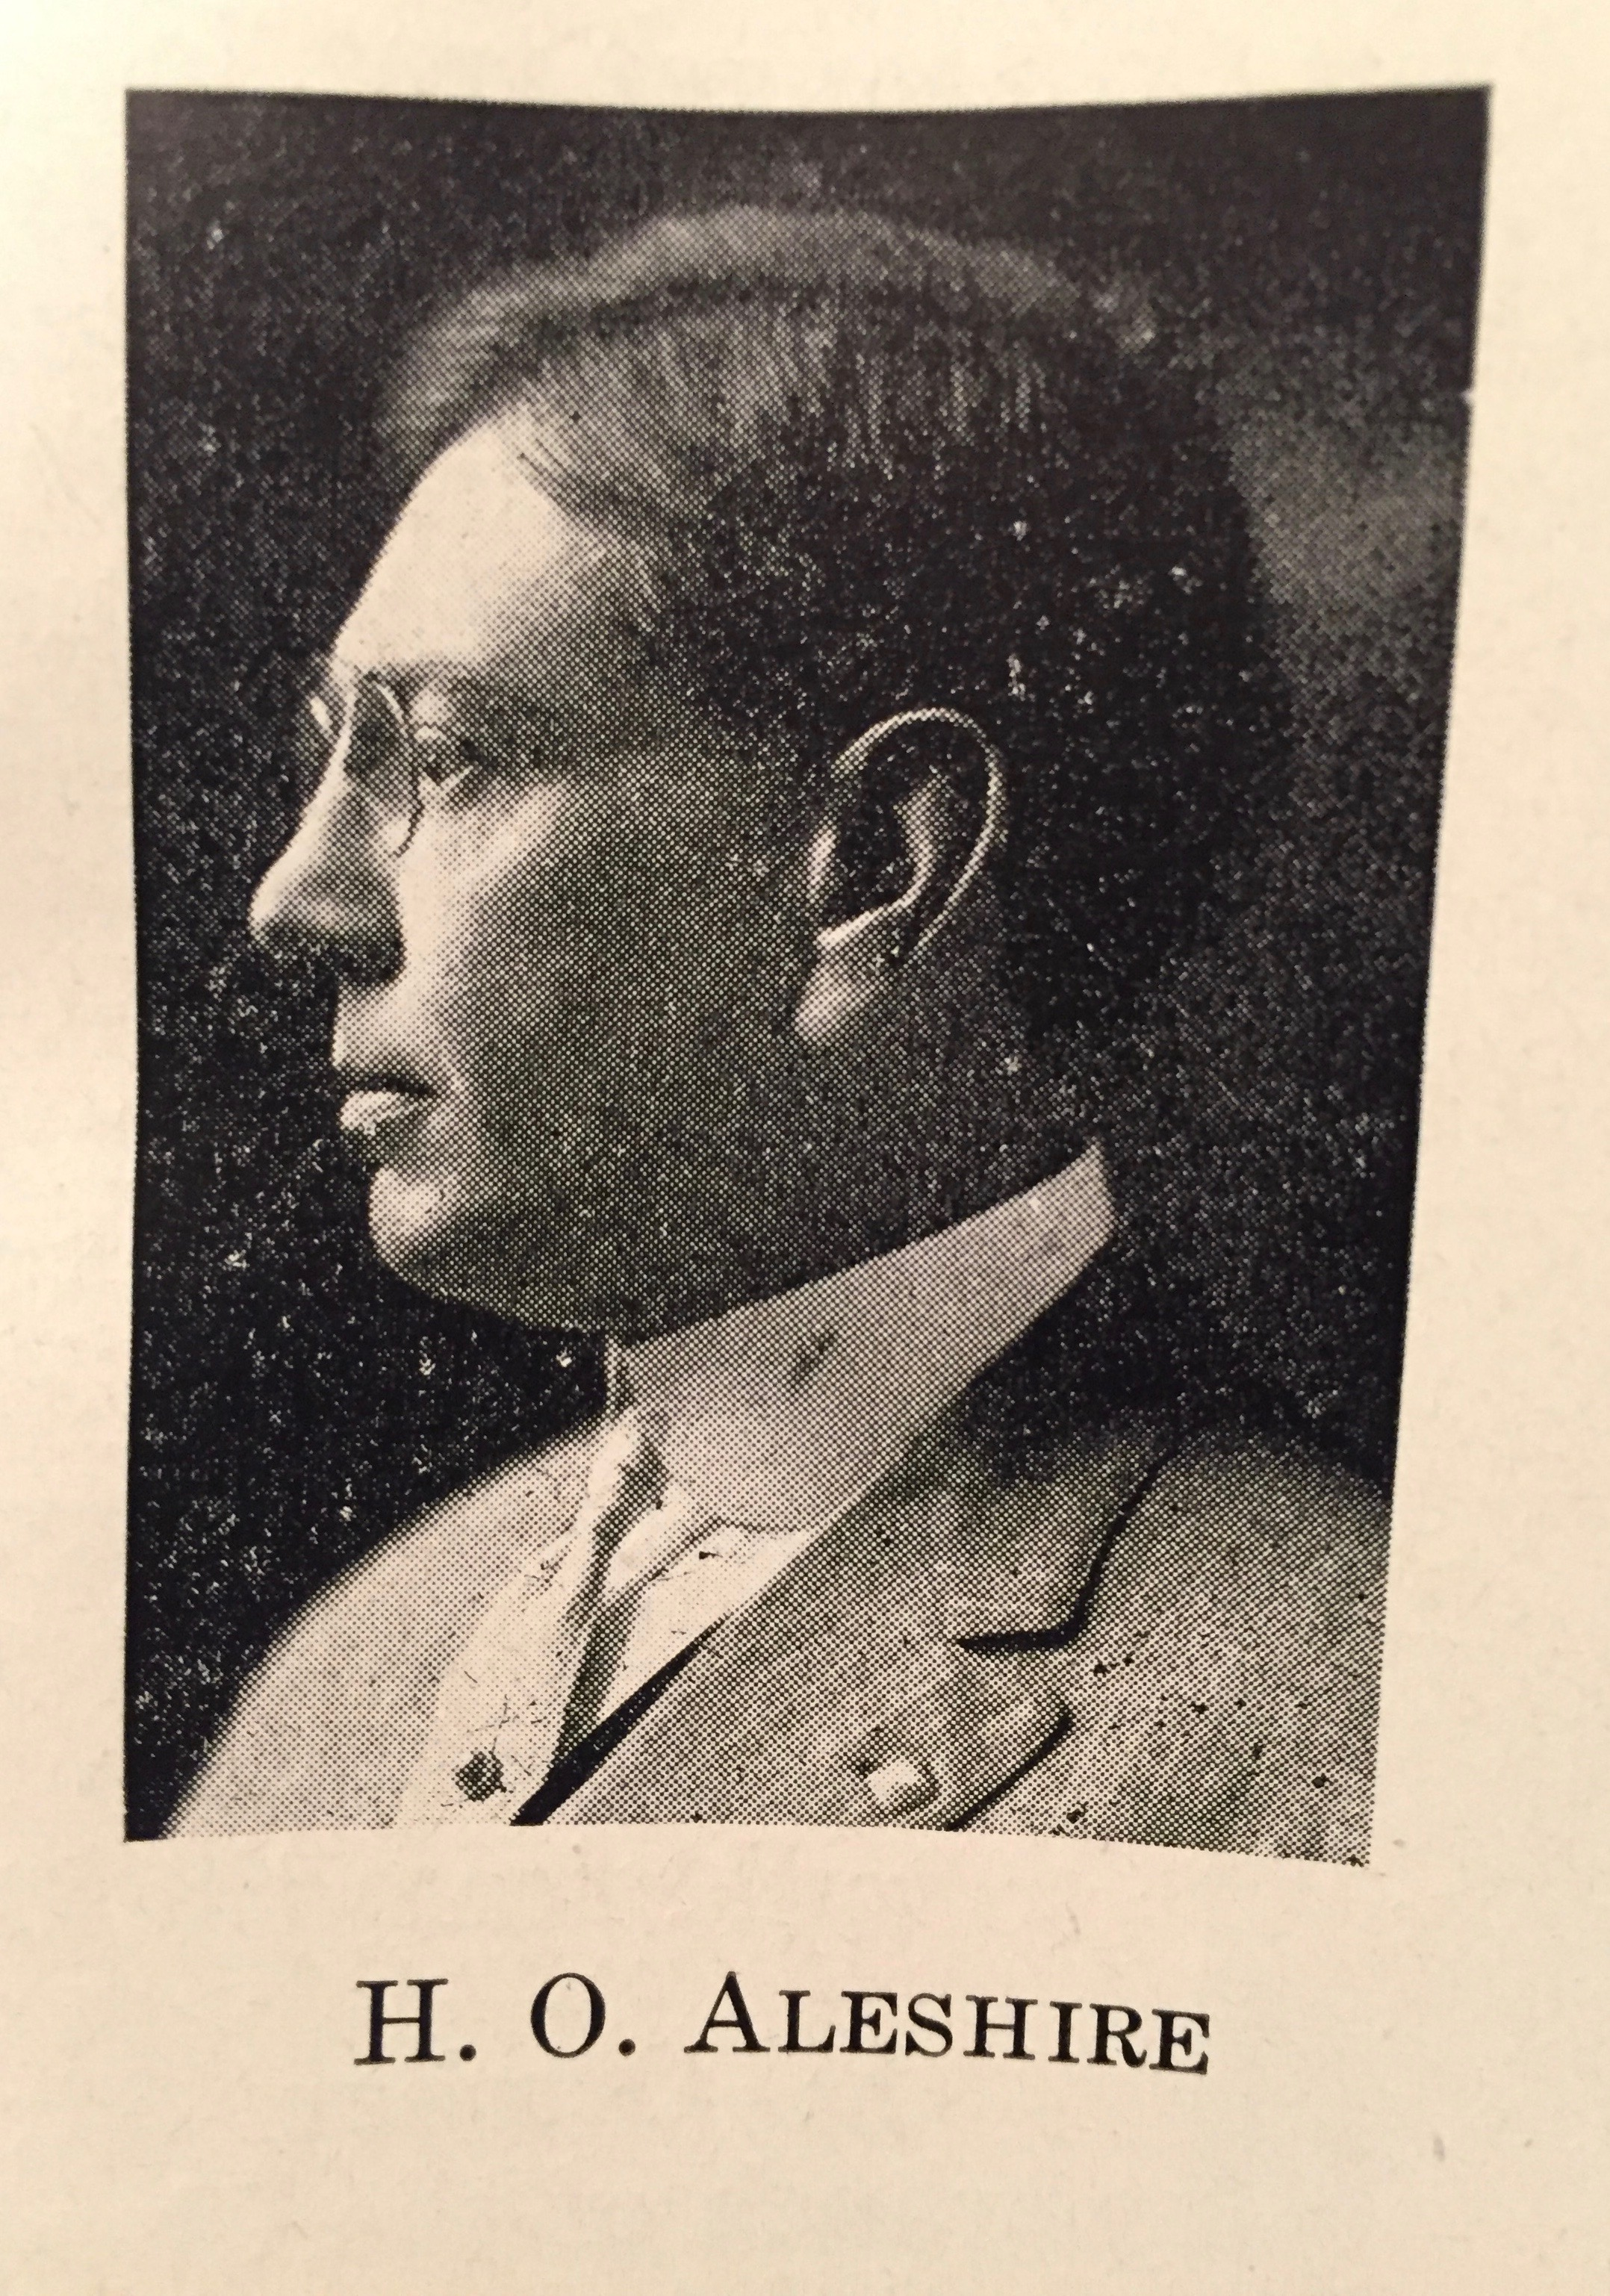 Photo of Henry O. Aleshire, cashier for the bank.